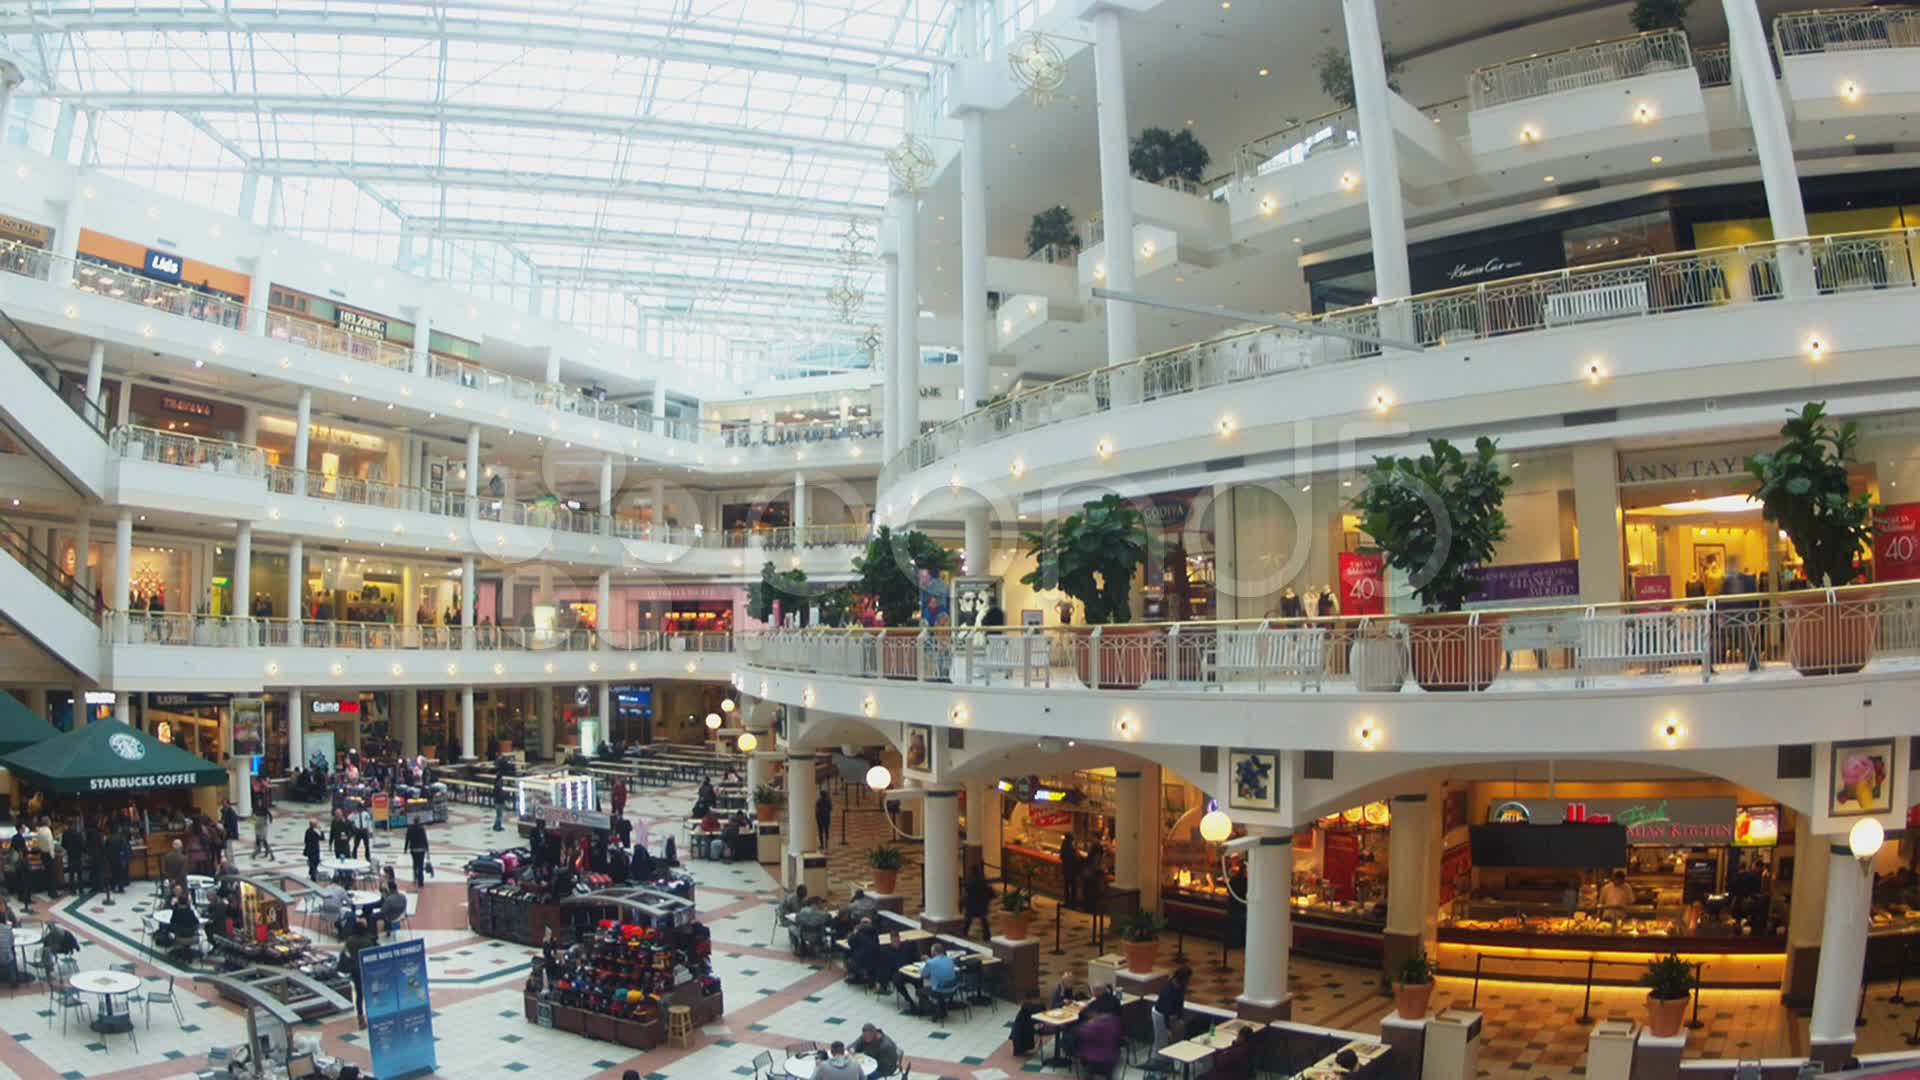 Which Malls does Pentagon Centre beat? Landmark Mall - Many malls beat this place, but to be more specific, this mall has more stores than Landmark and it is not as outdated as Landmark. Potomac Mills Mall - Pentagon Centre saves headaches and shows Potomac how first floor mall layouts are done.3/5(9).